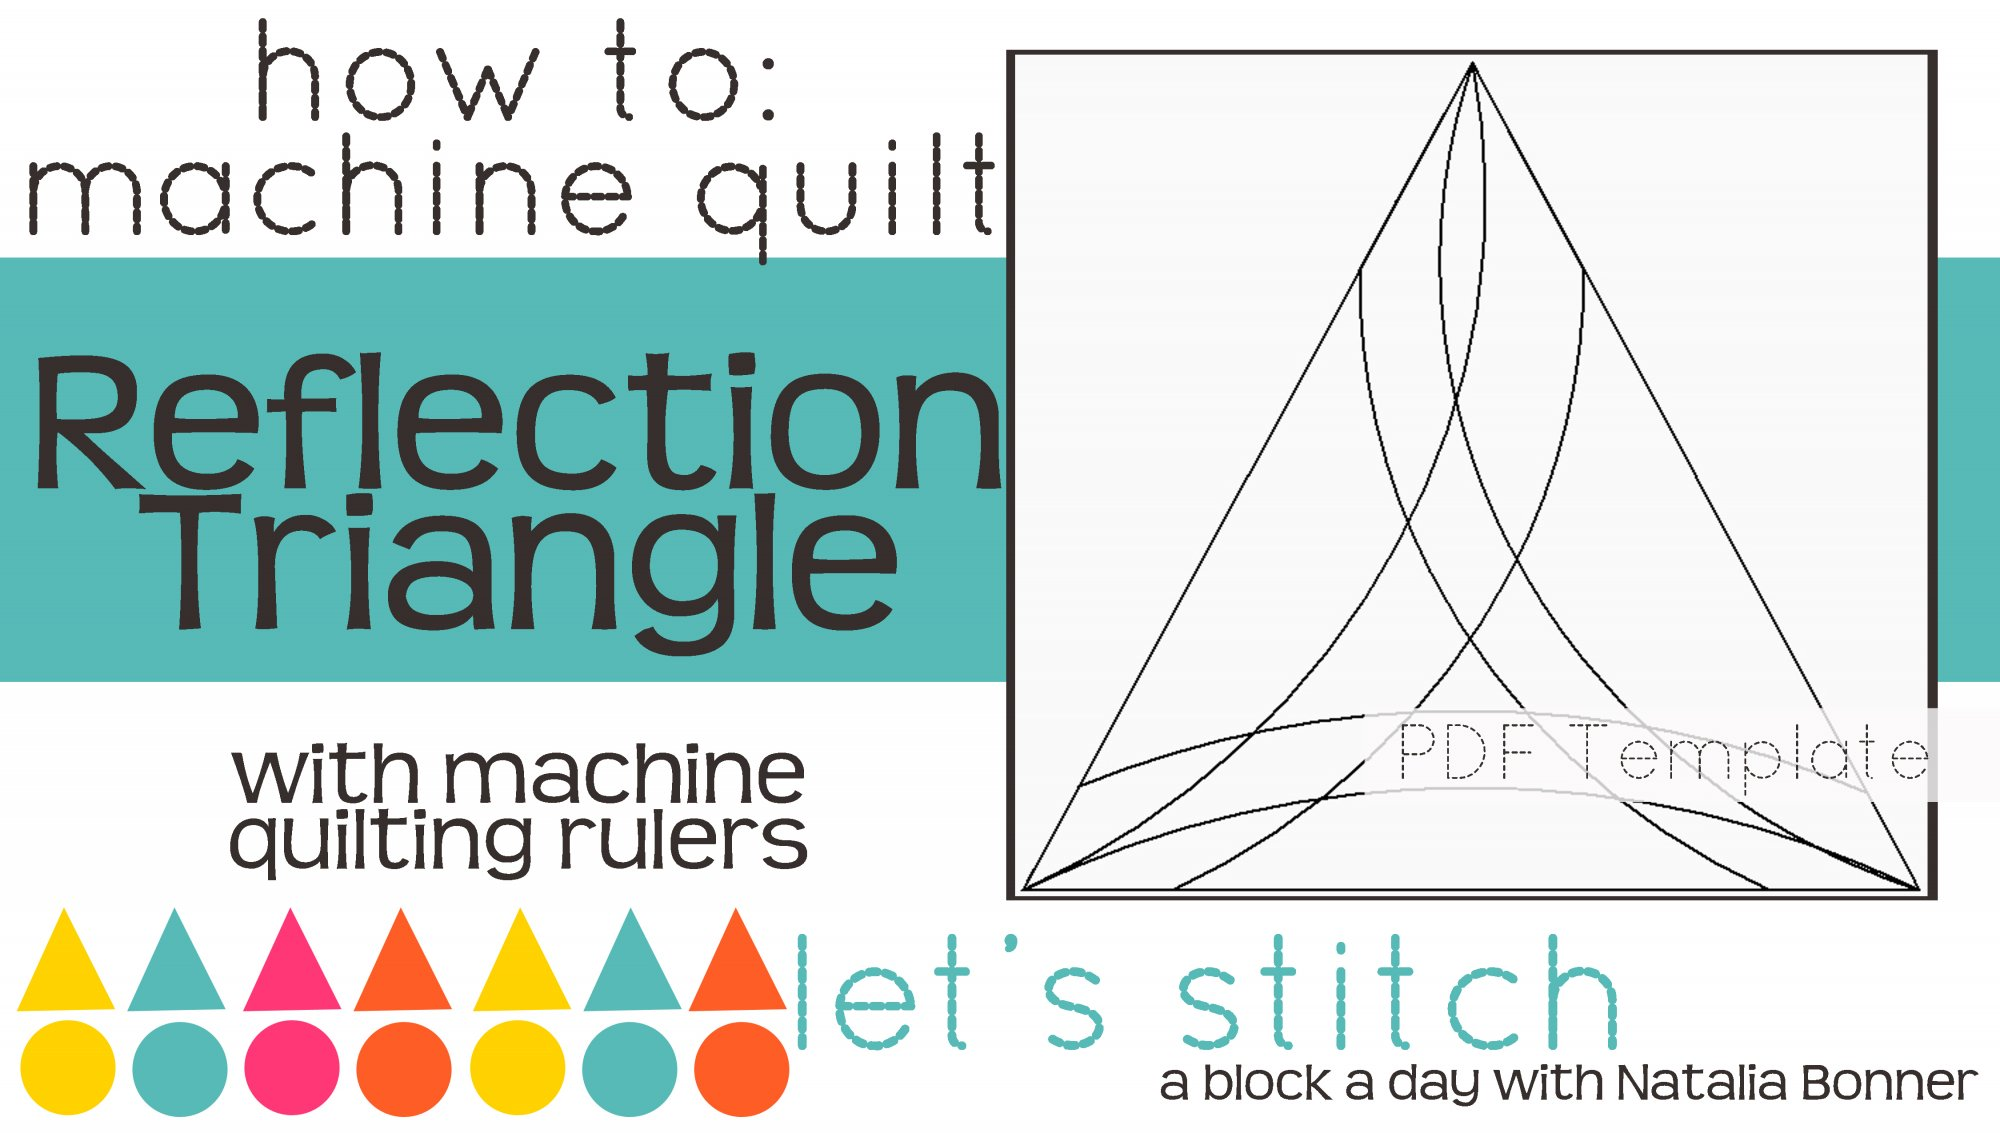 Let's Stitch - A Block a Day With Natalia Bonner - PDF - Reflection Triangle